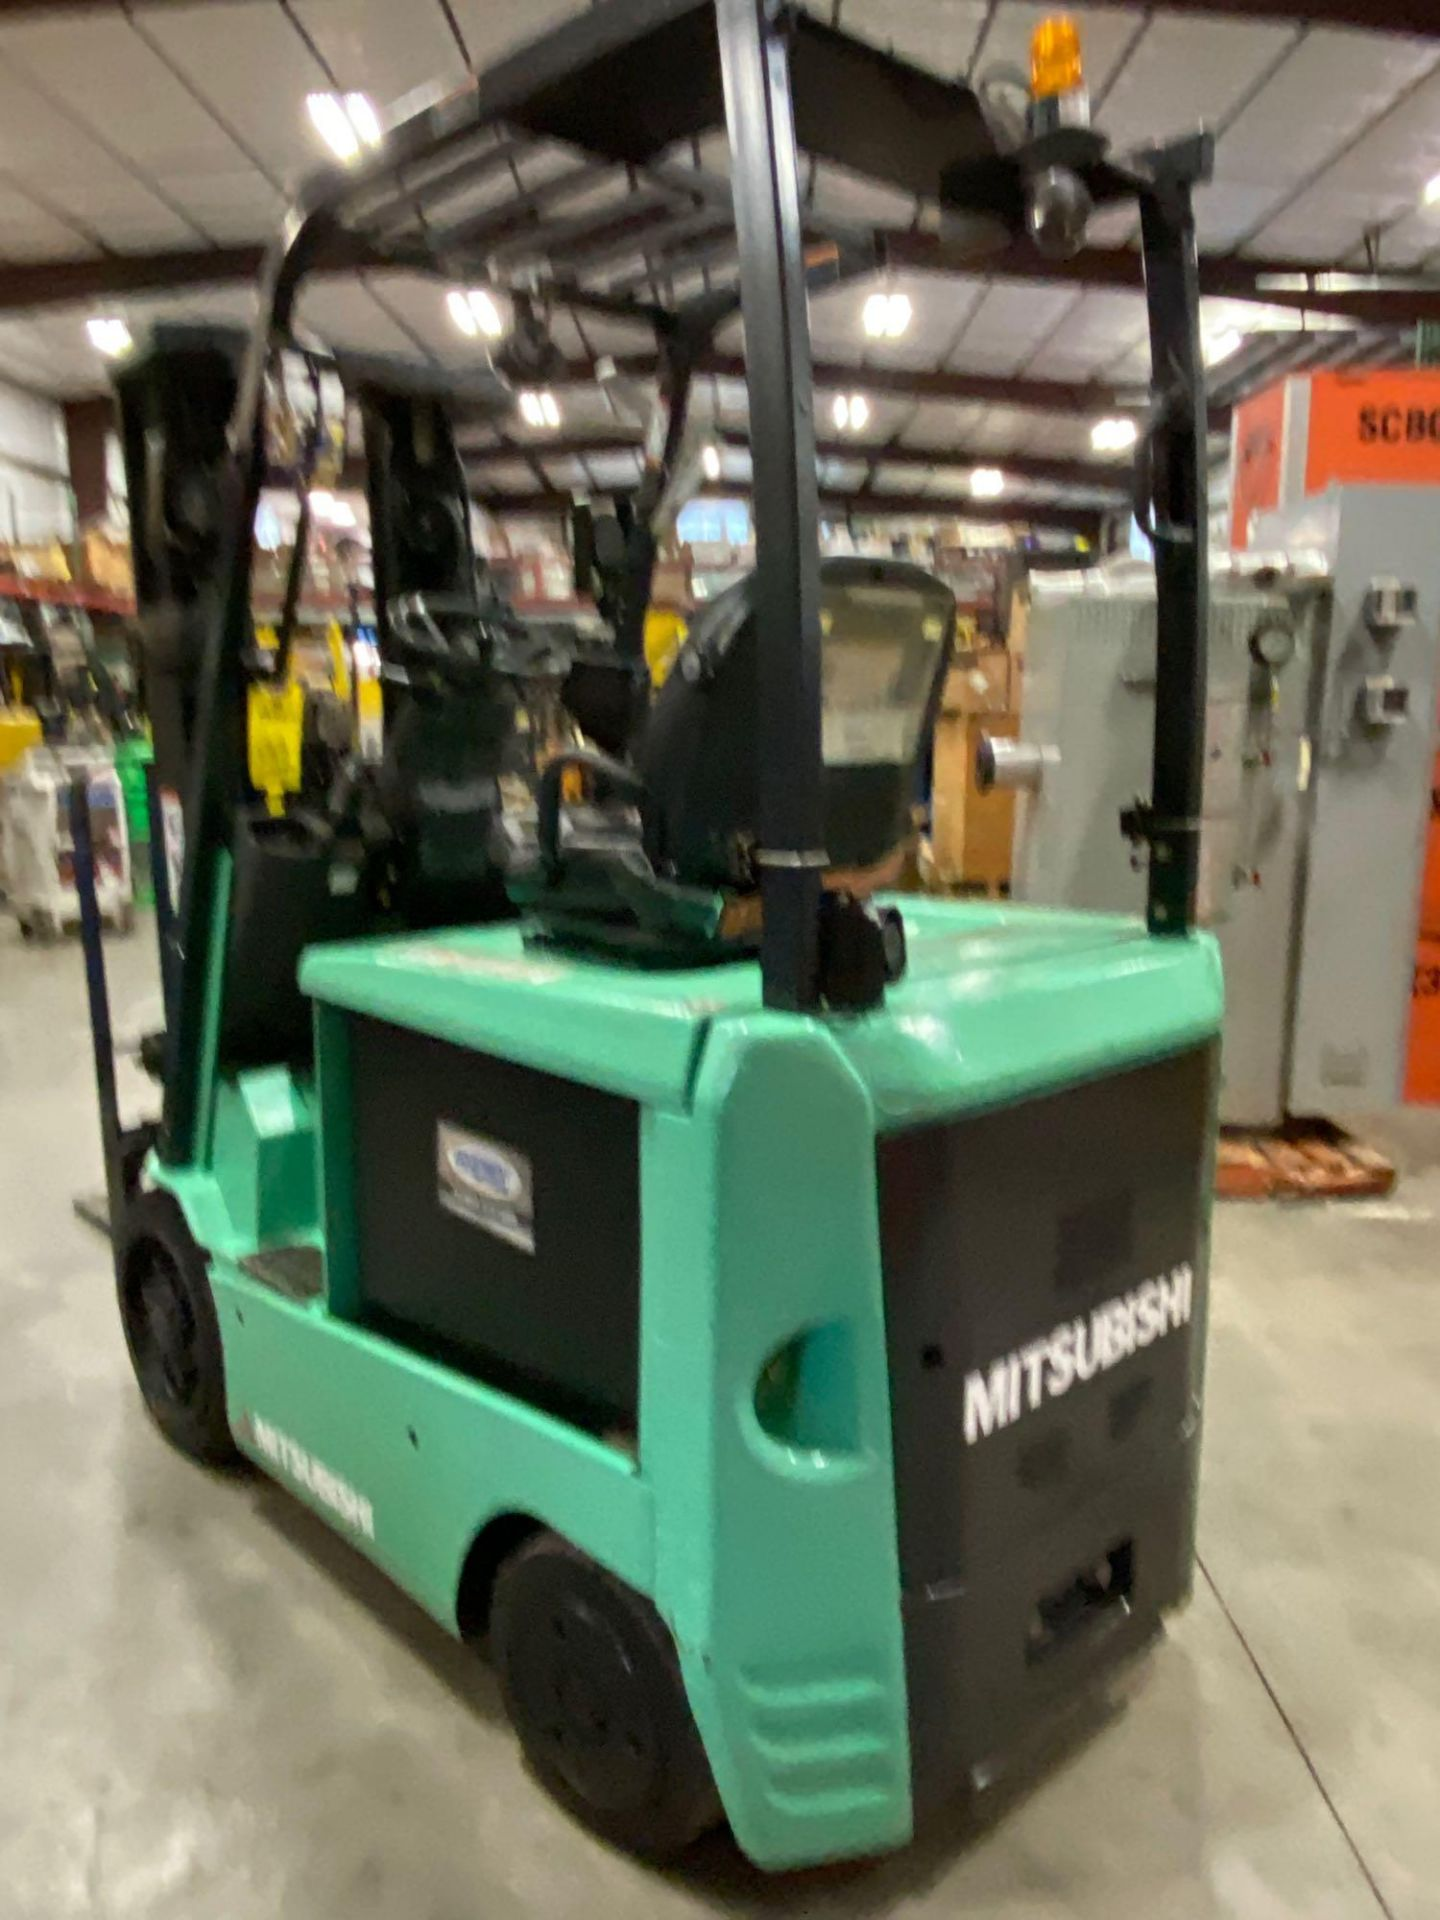 "2015 MITSUBISHI FBC25N2 36V FORKLIFT, APPROX 4500LB CAPACITY, TILT, SIDESHIFT, LIFT 188"" MAX HEIGHT, - Image 7 of 20"